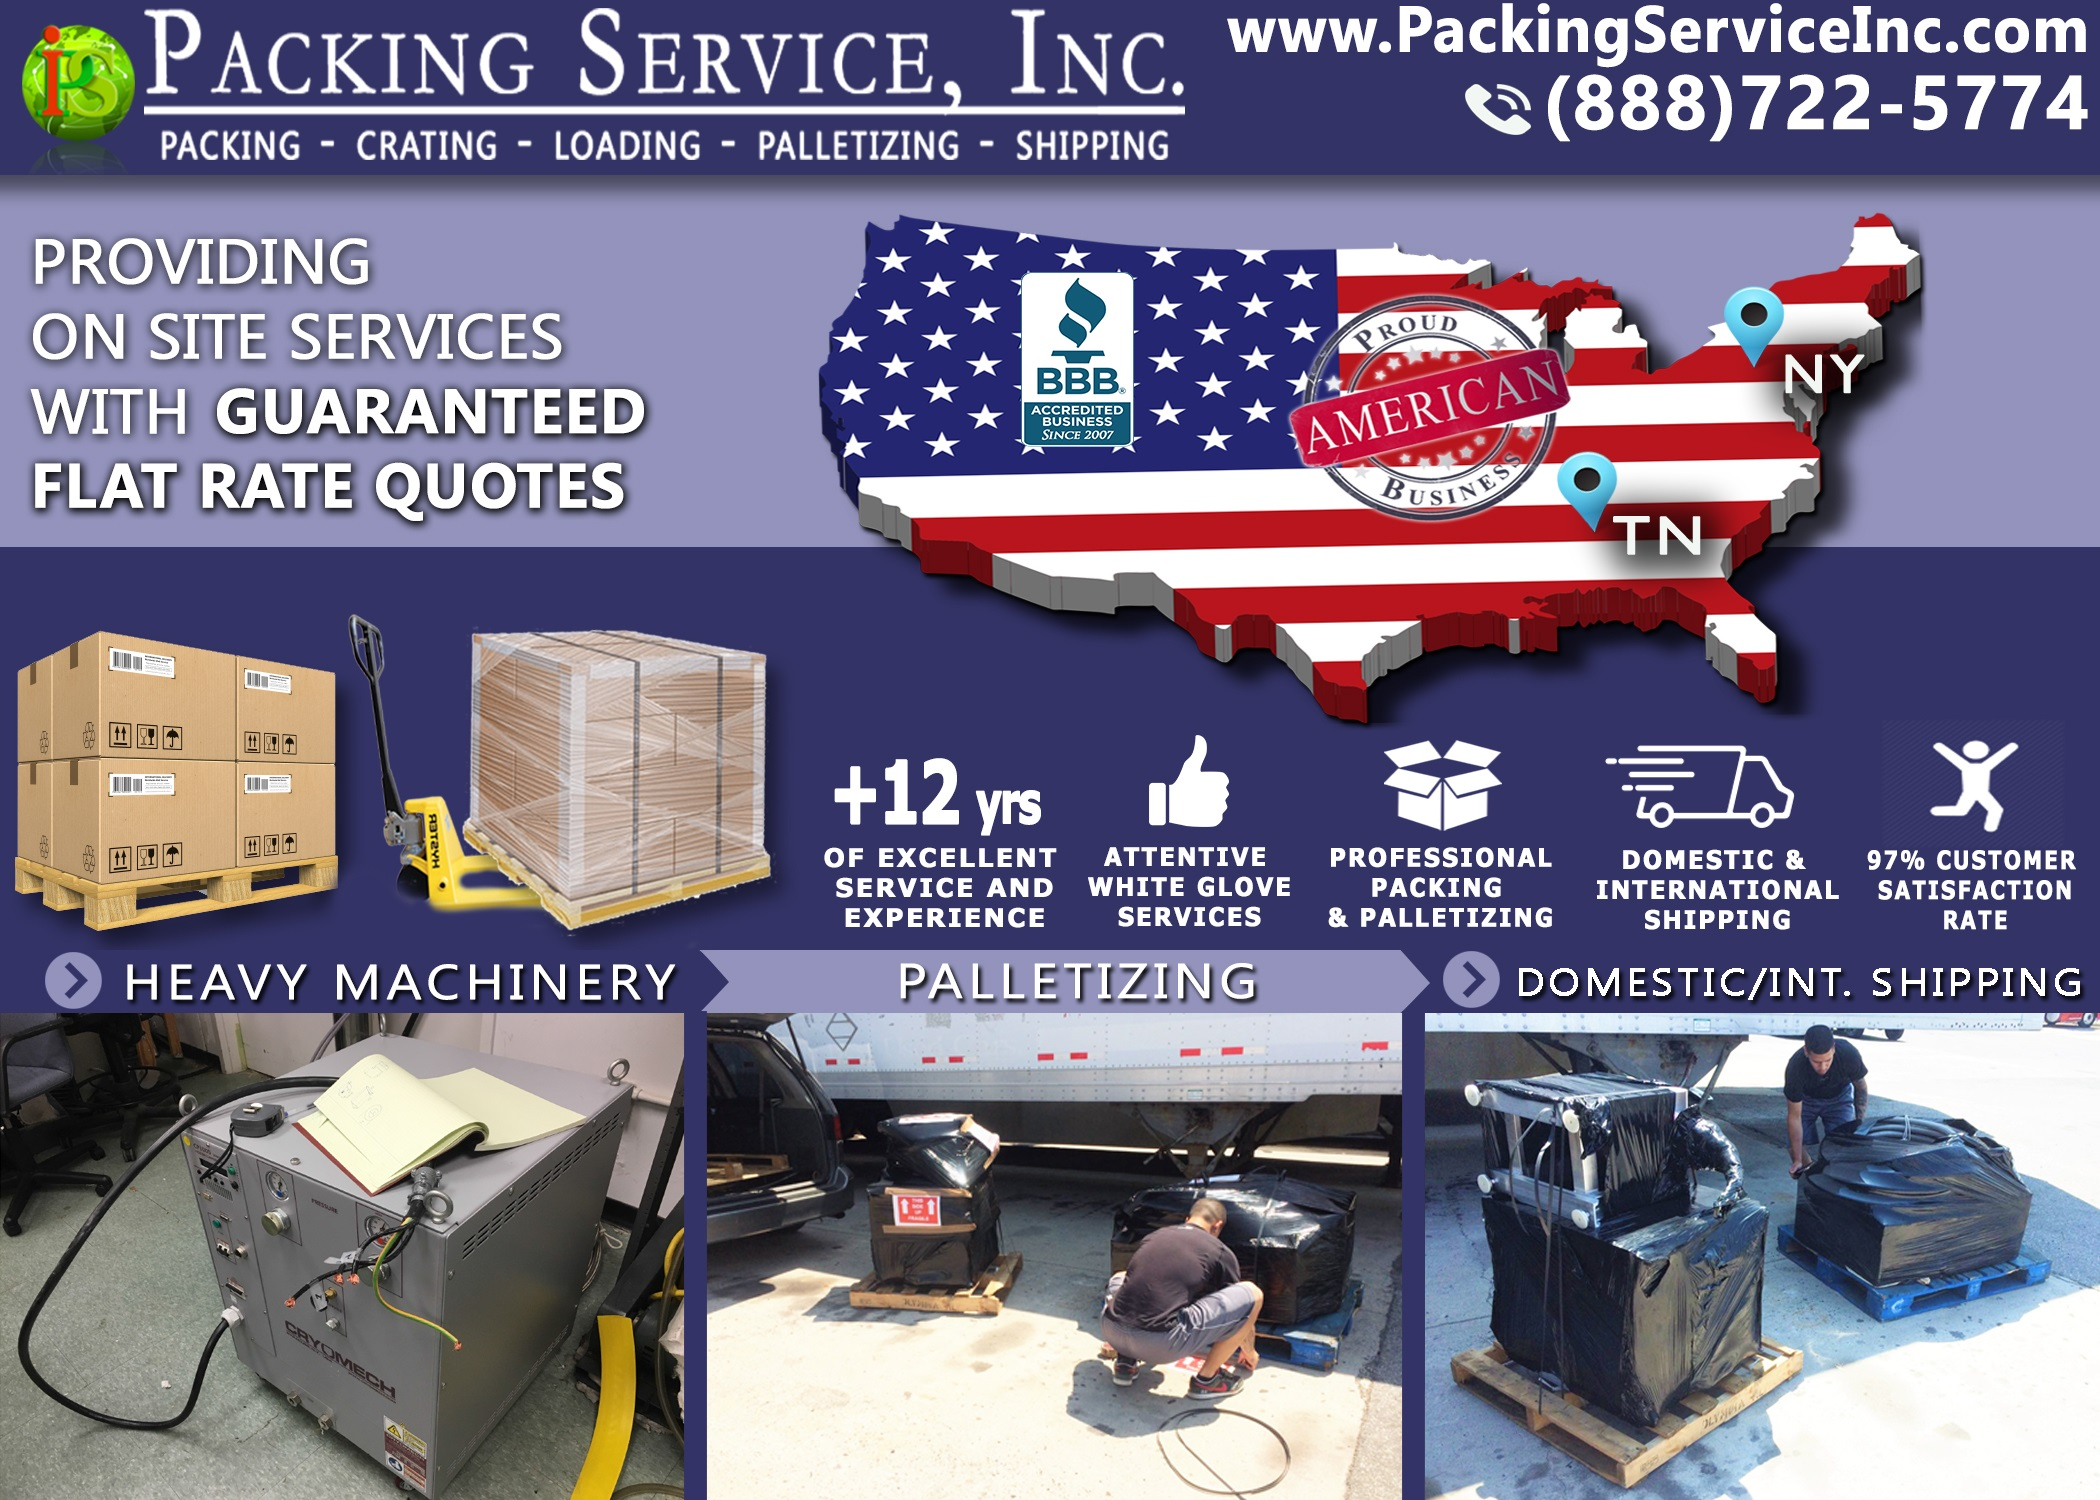 Wrapping, Palletizing and Shipping from New York, NY to Oak Ridge, TN with Packing Service, Inc. - 965